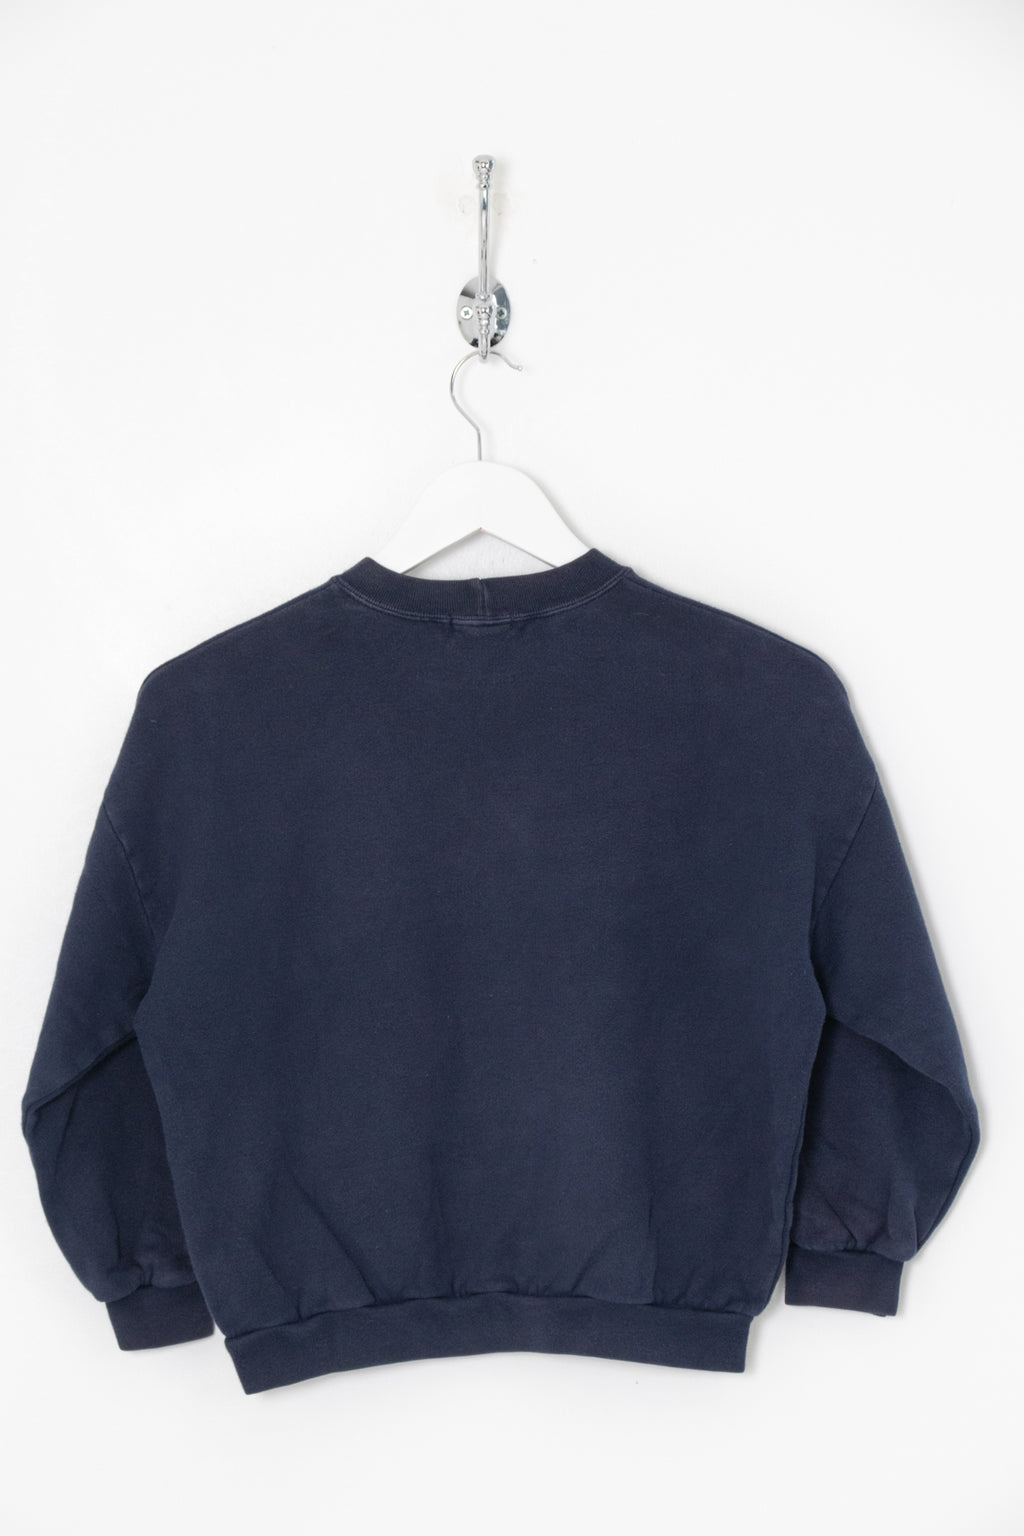 Kids Benetton Sweatshirt (M)